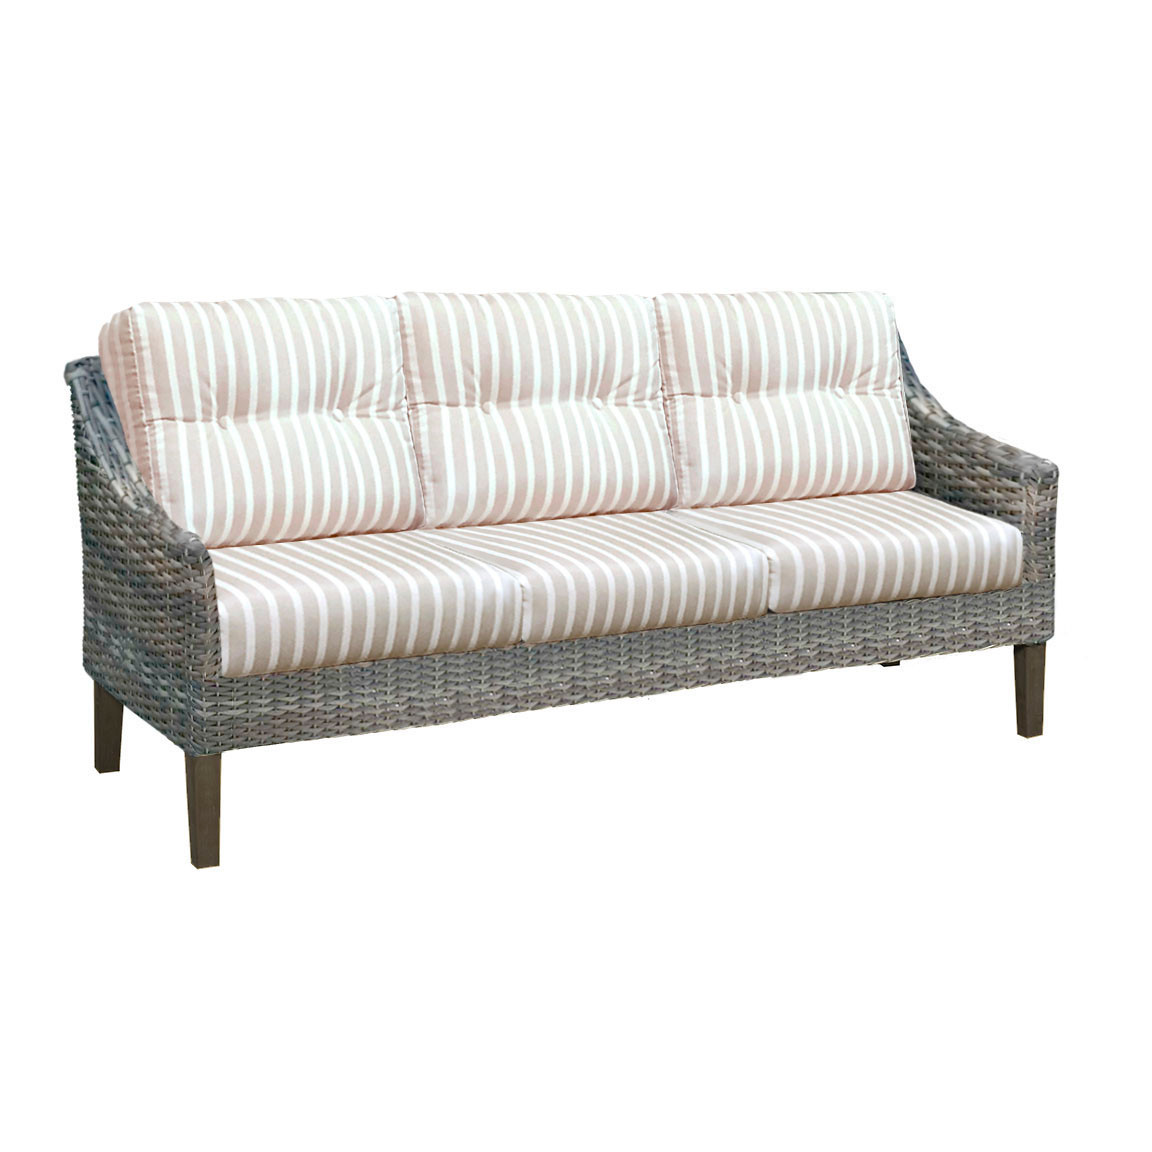 cd06e649b9d02f Forever Patio Aberdeen Wicker 3 Seat Sofa by NorthCape International ...